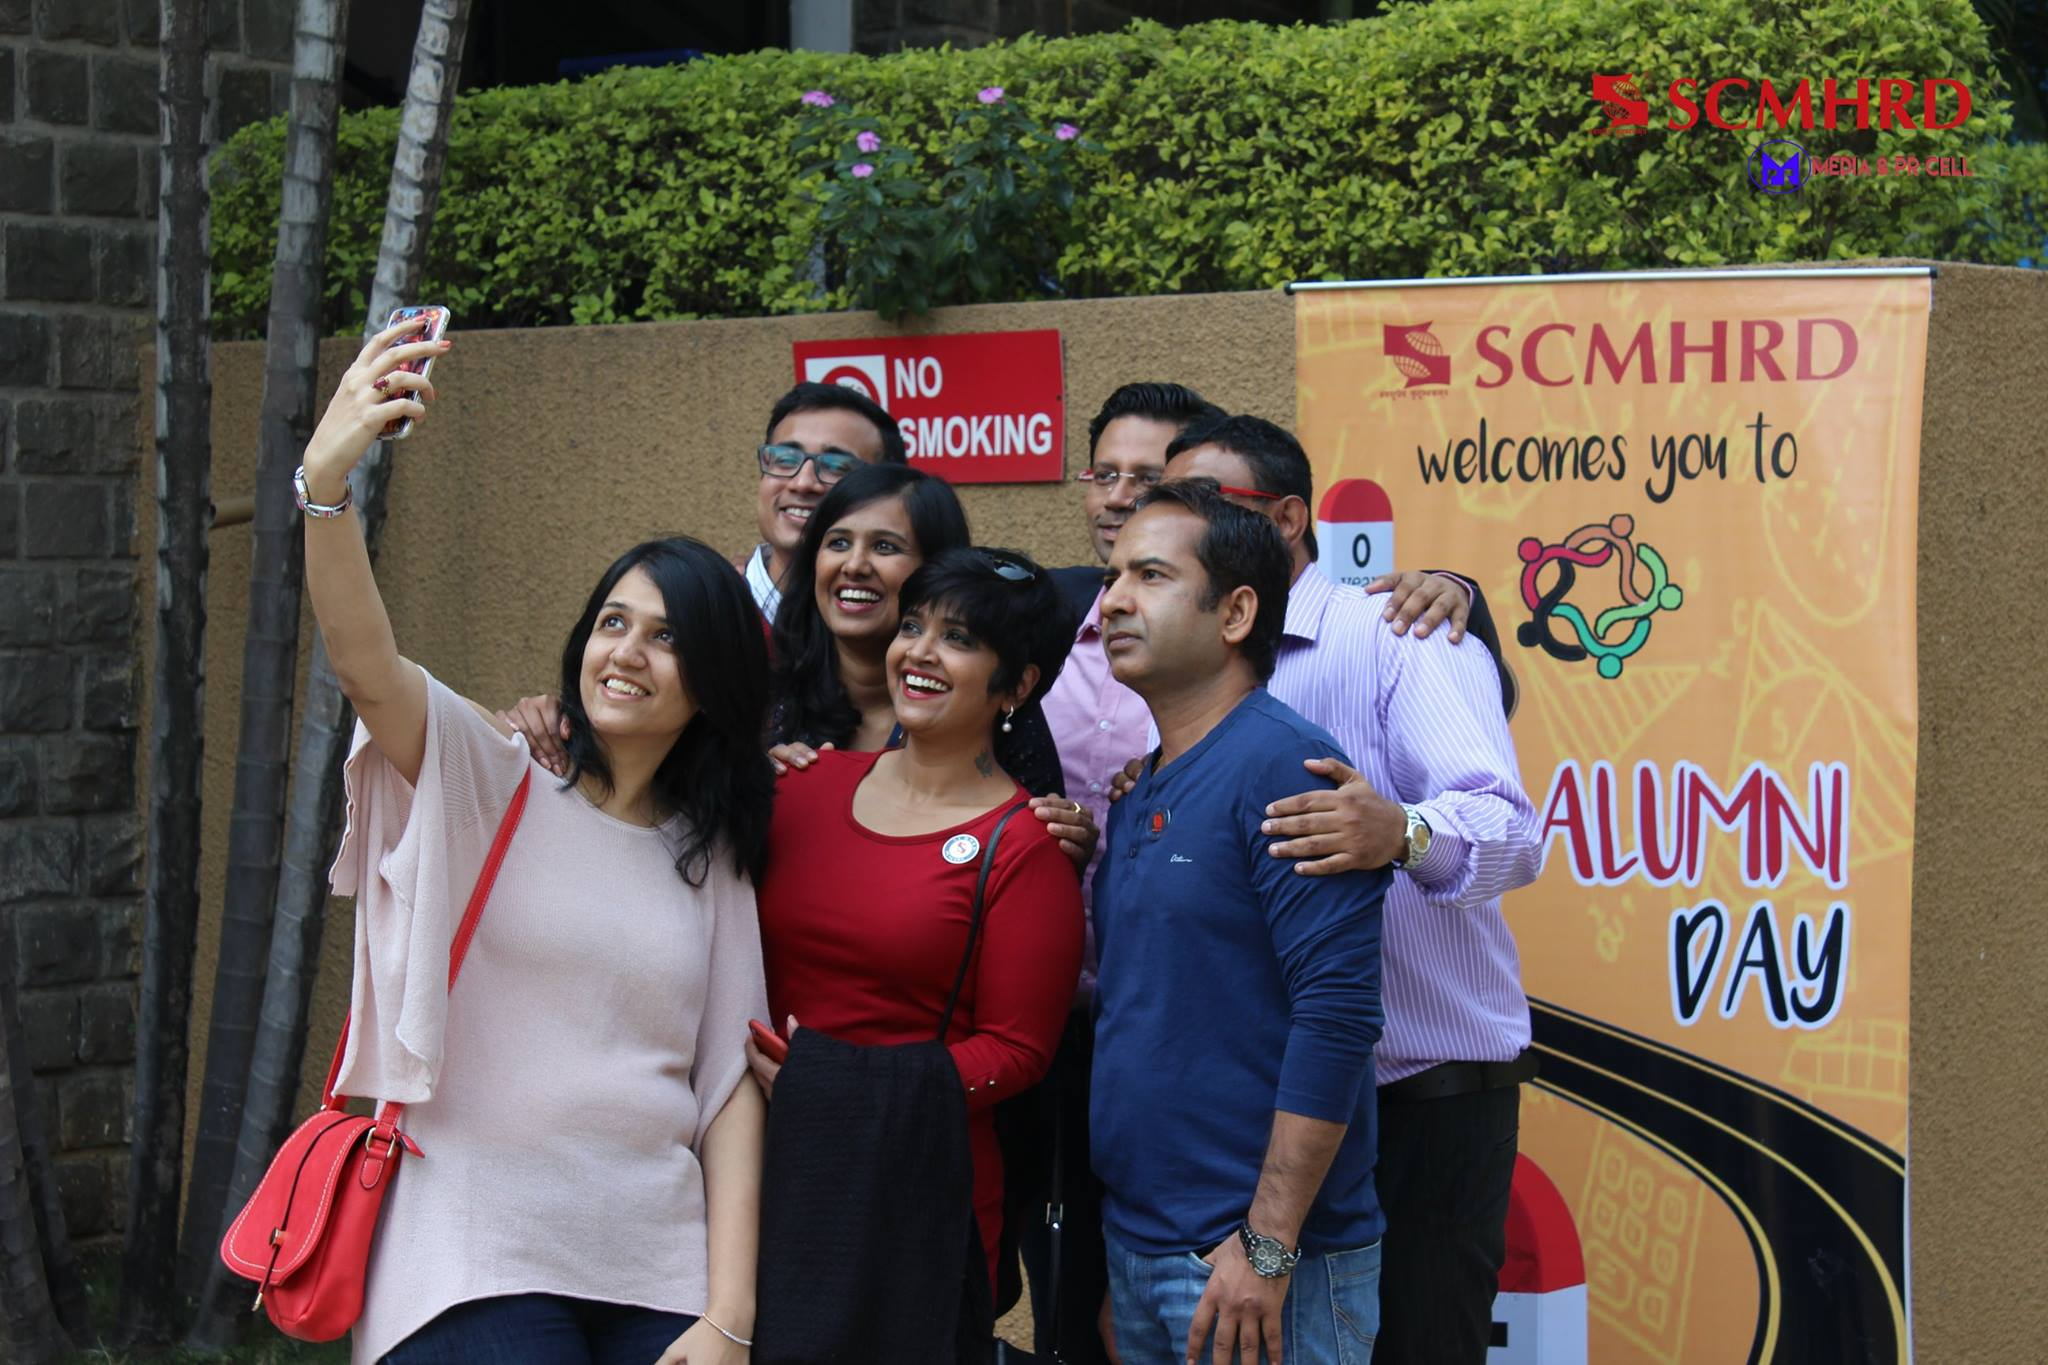 SCMHRD welcome alumni day